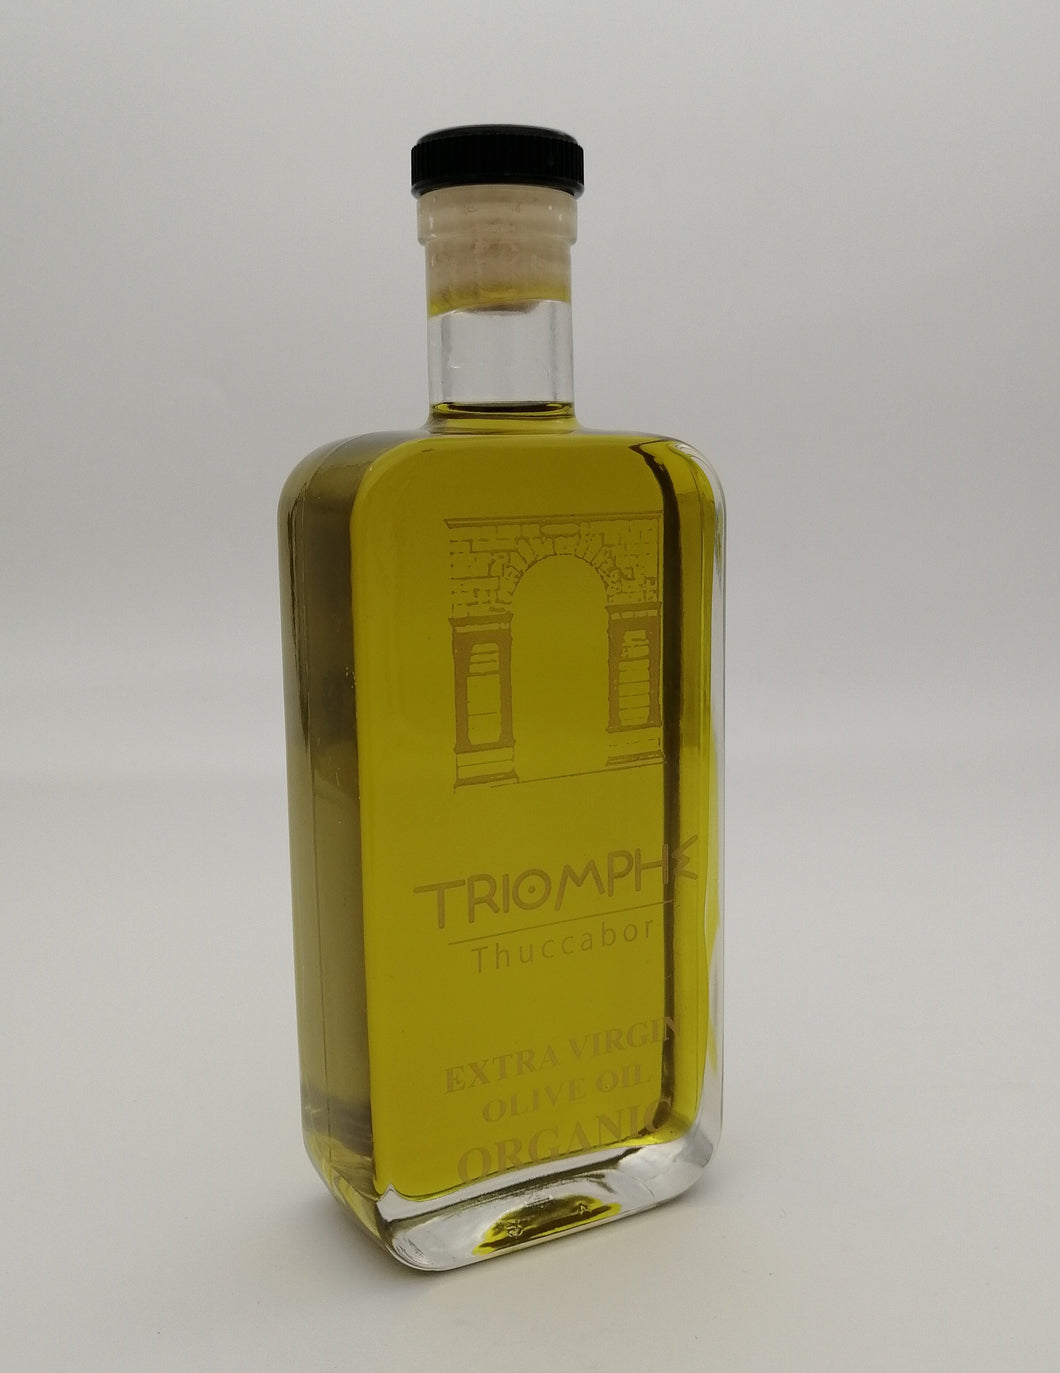 HUILE D'OLIVE BIO EXTRA VIERGE - TRIOMPH THUCCABOR, 250 ml Packaging design